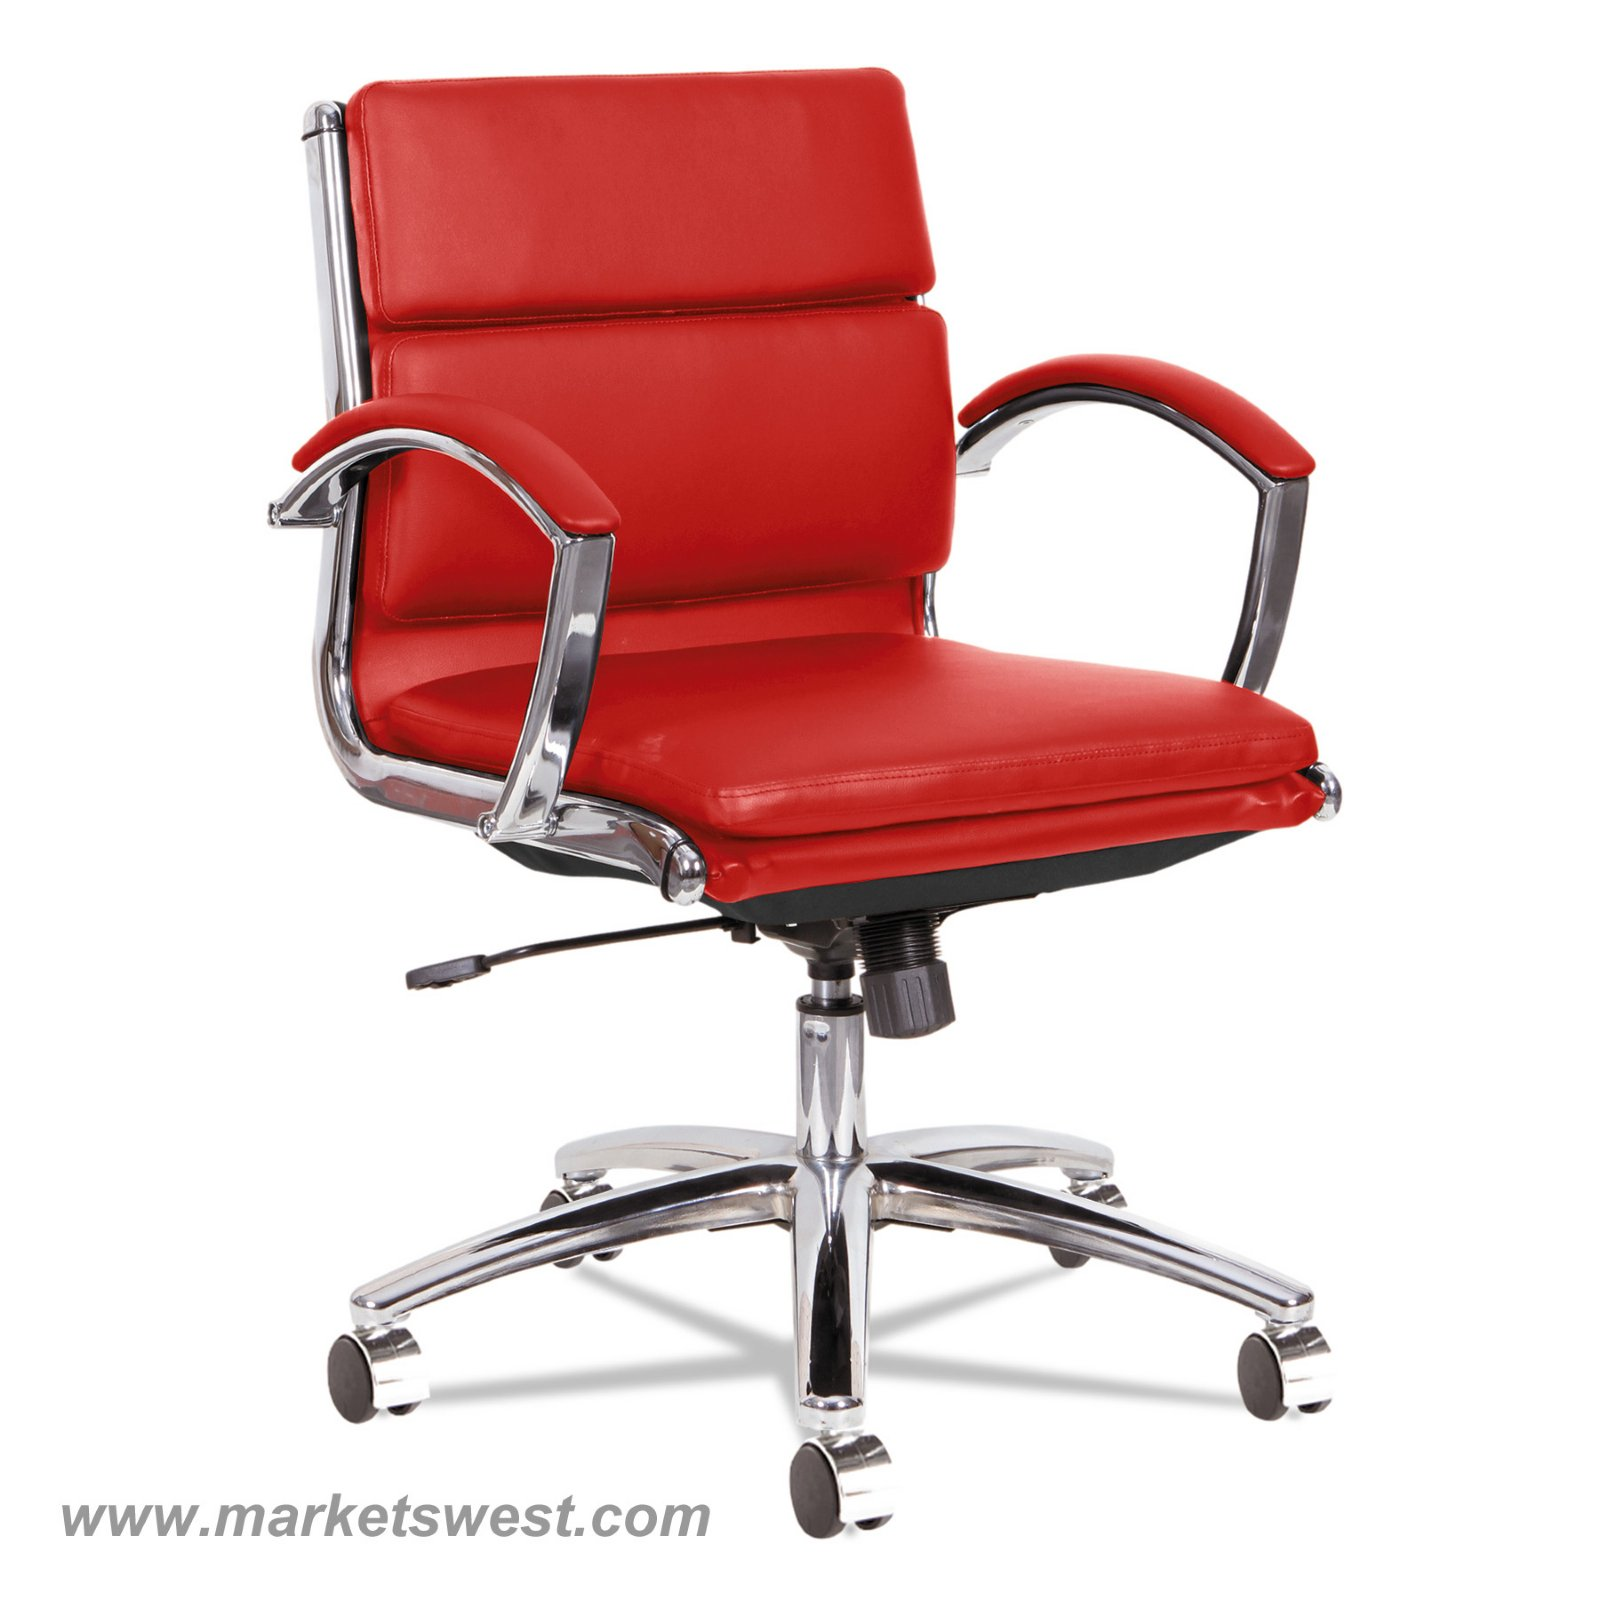 leather chrome chair toddler round wooden table and chairs neratoli low back swivel tilt red soft touch quick view